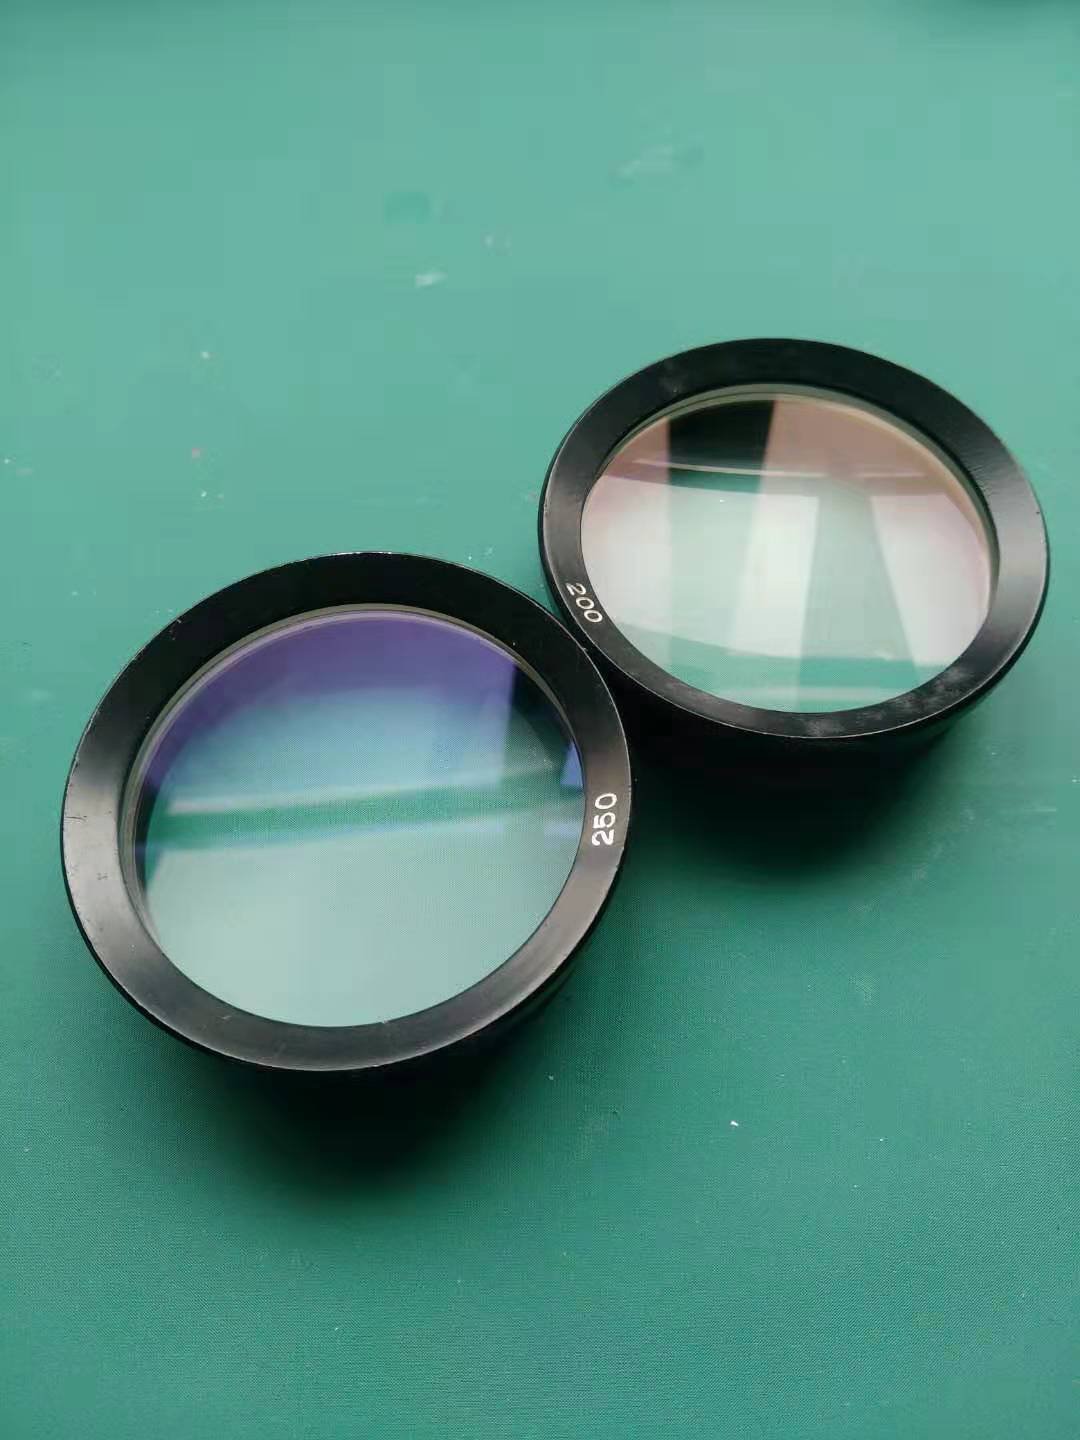 [OL-175] 175mm Objective Lens for Surgical Microscopes